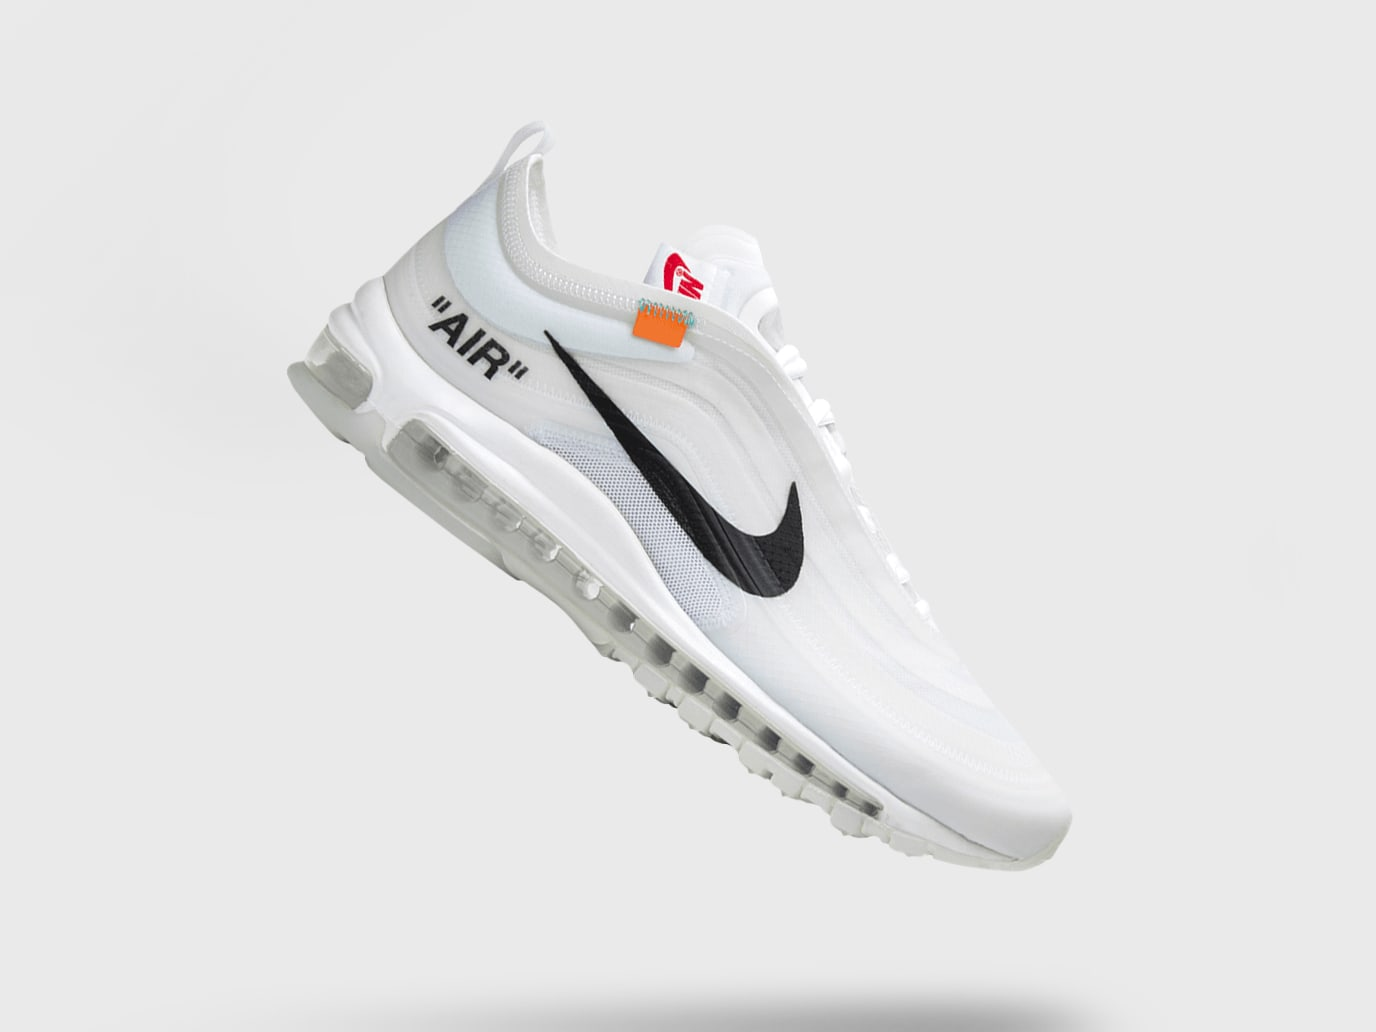 off-white x nike air max 97 'the ten'